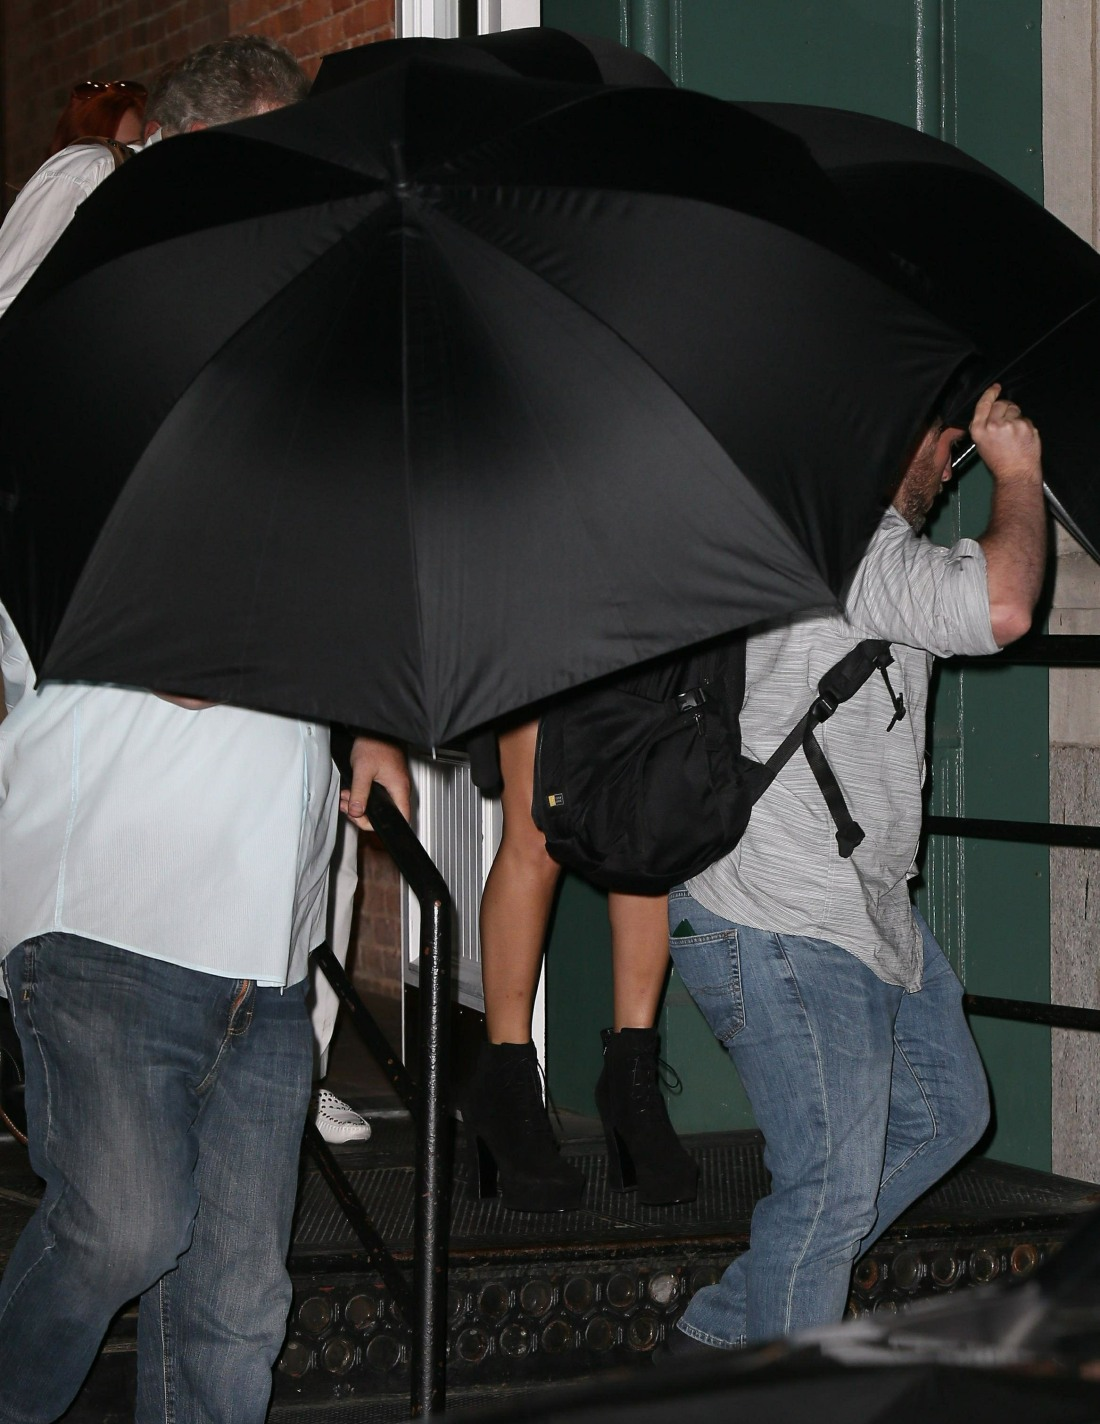 Taylor Swift and parents use umbrellas to hide themselves as they leave out the backdoor of her apartment